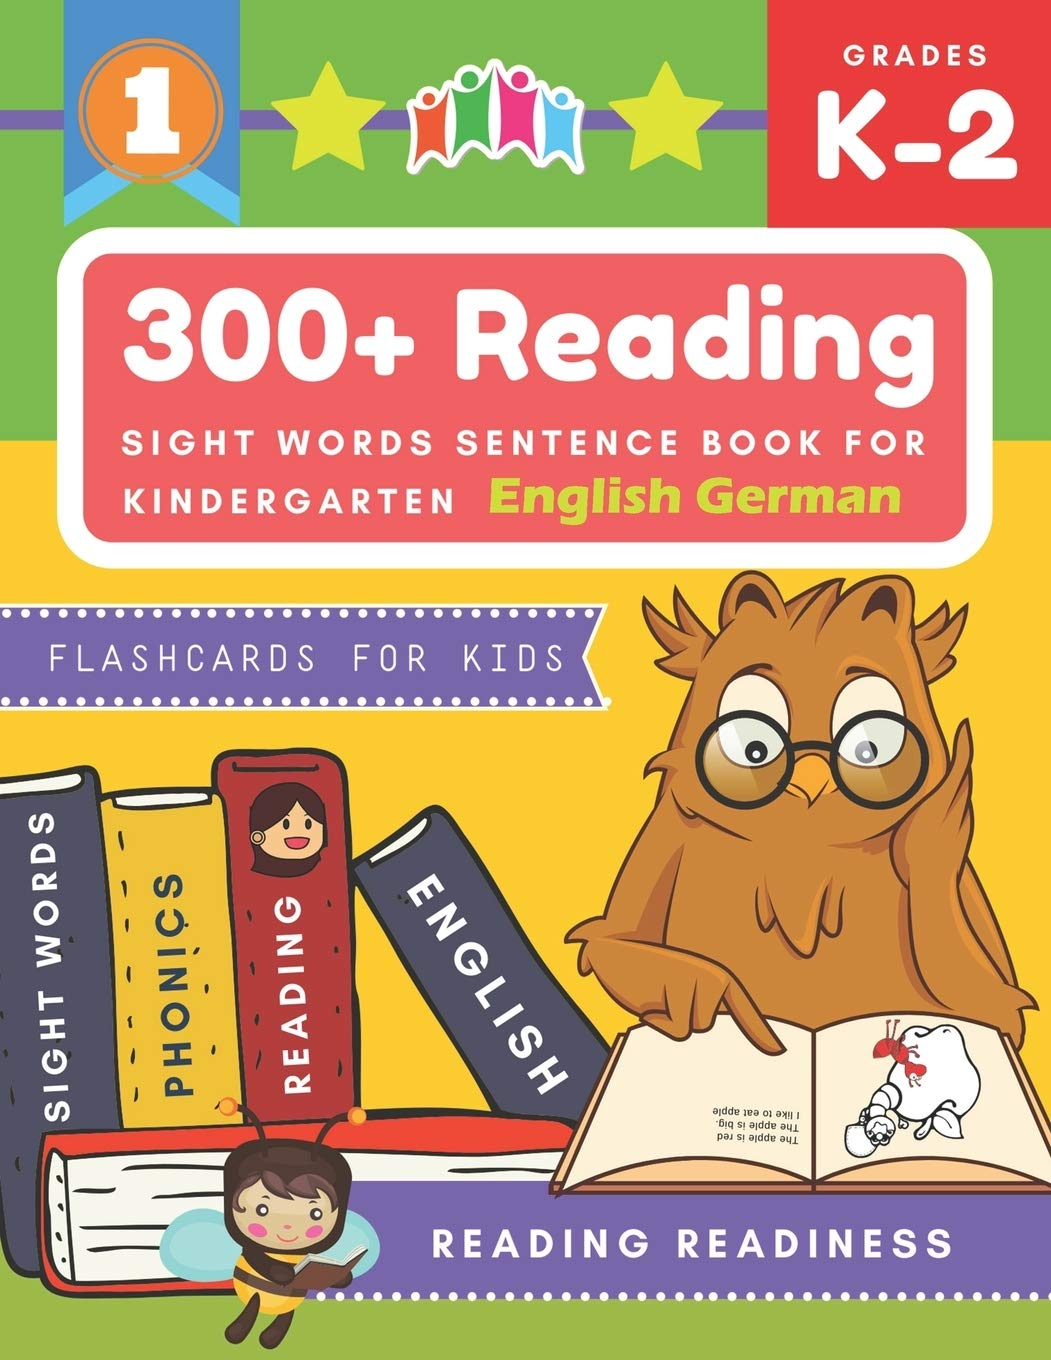 300+ Reading Sight Words Sentence Book for Kindergarten English German Flashcards for Kids: I Can Read several short sentences building games plus ... reading good first teaching for all children